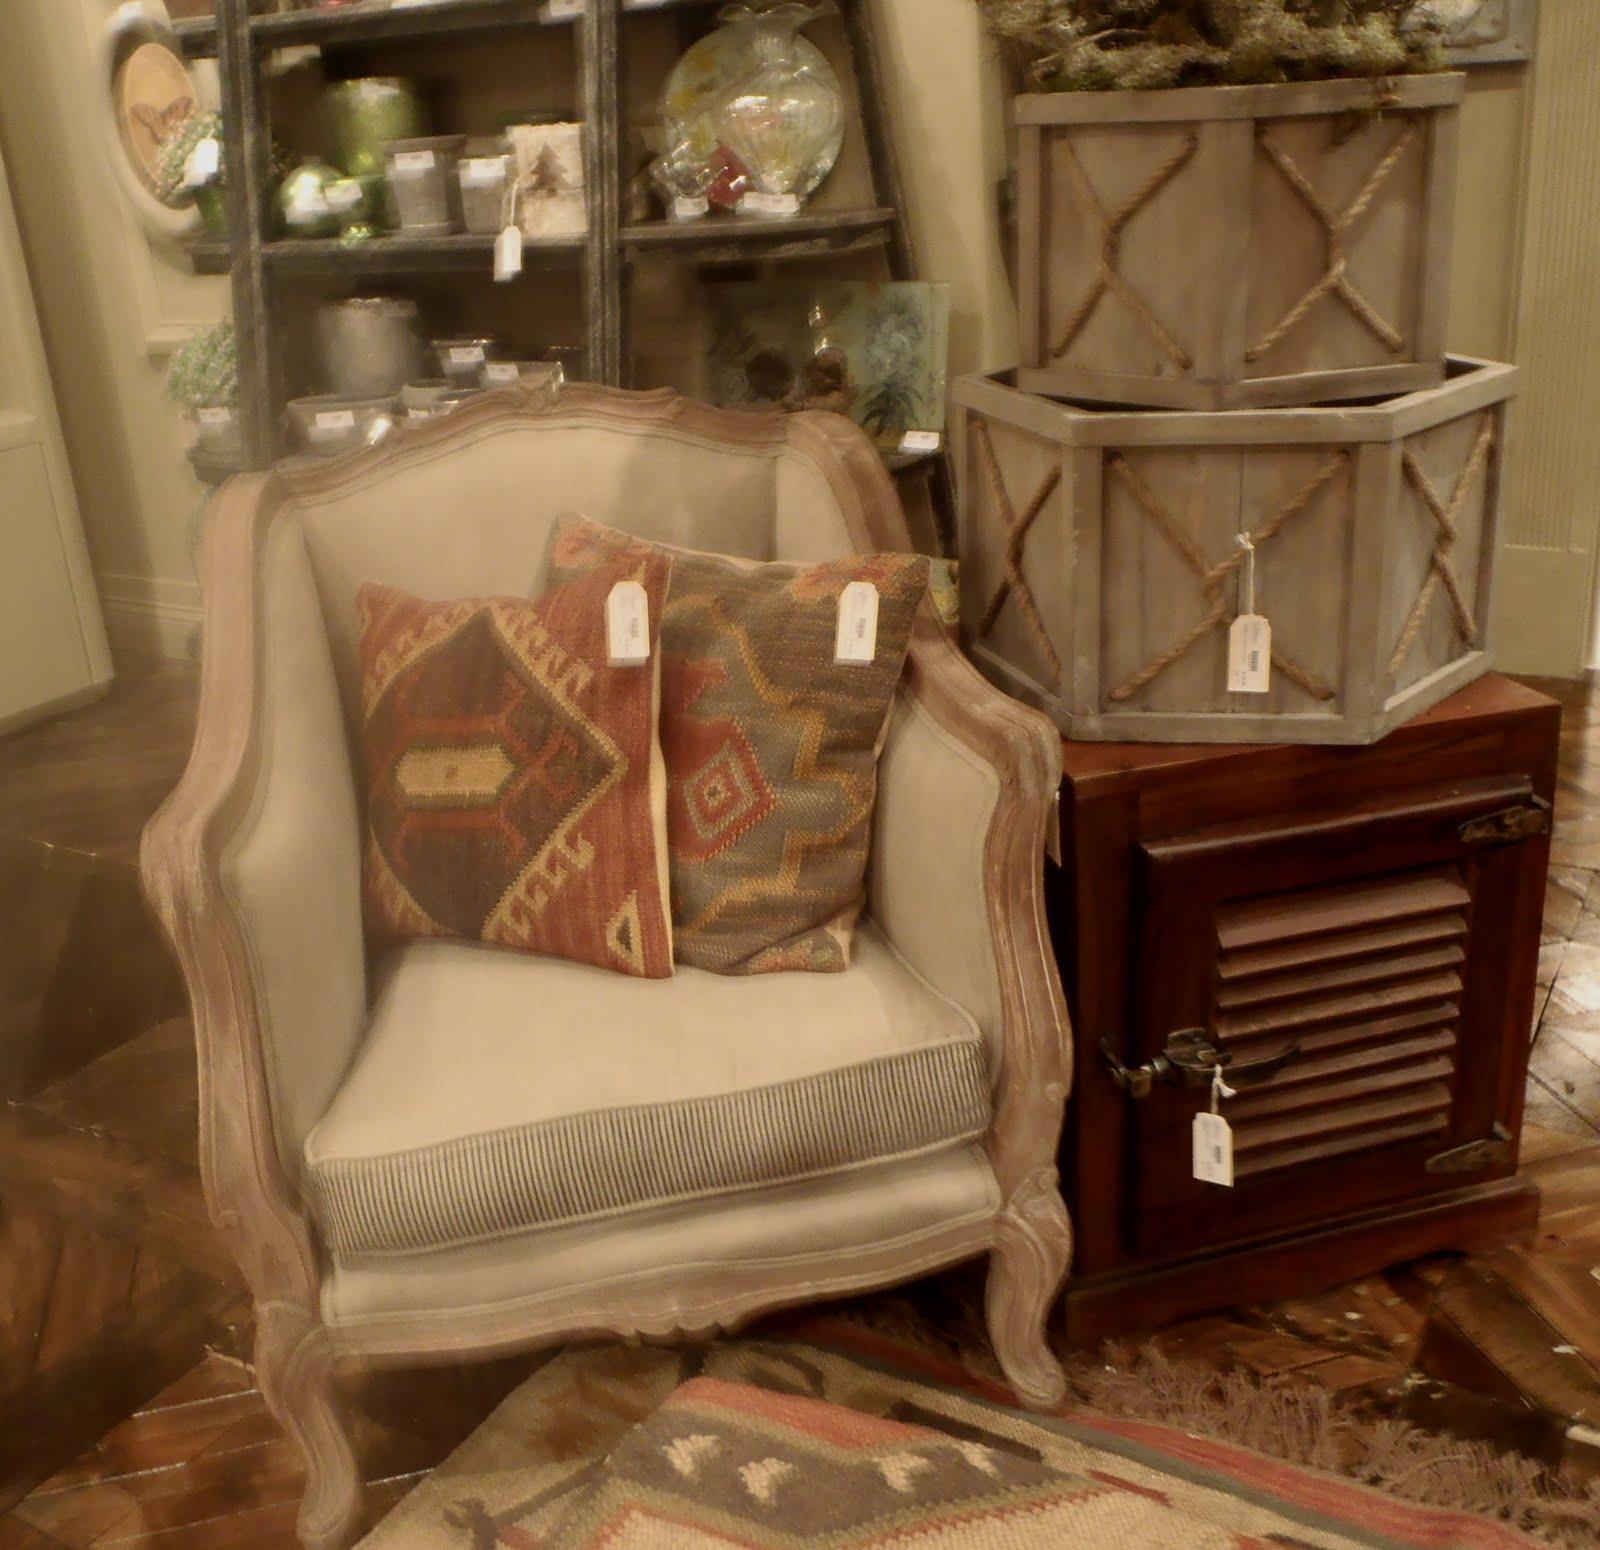 Teaming Of The Moroccan Kilim With The Linen Sofa. The Warm Earth Tones In  The Different Patterns On The Pillows Ottomans And Rug Do Not Fight With  Each ...